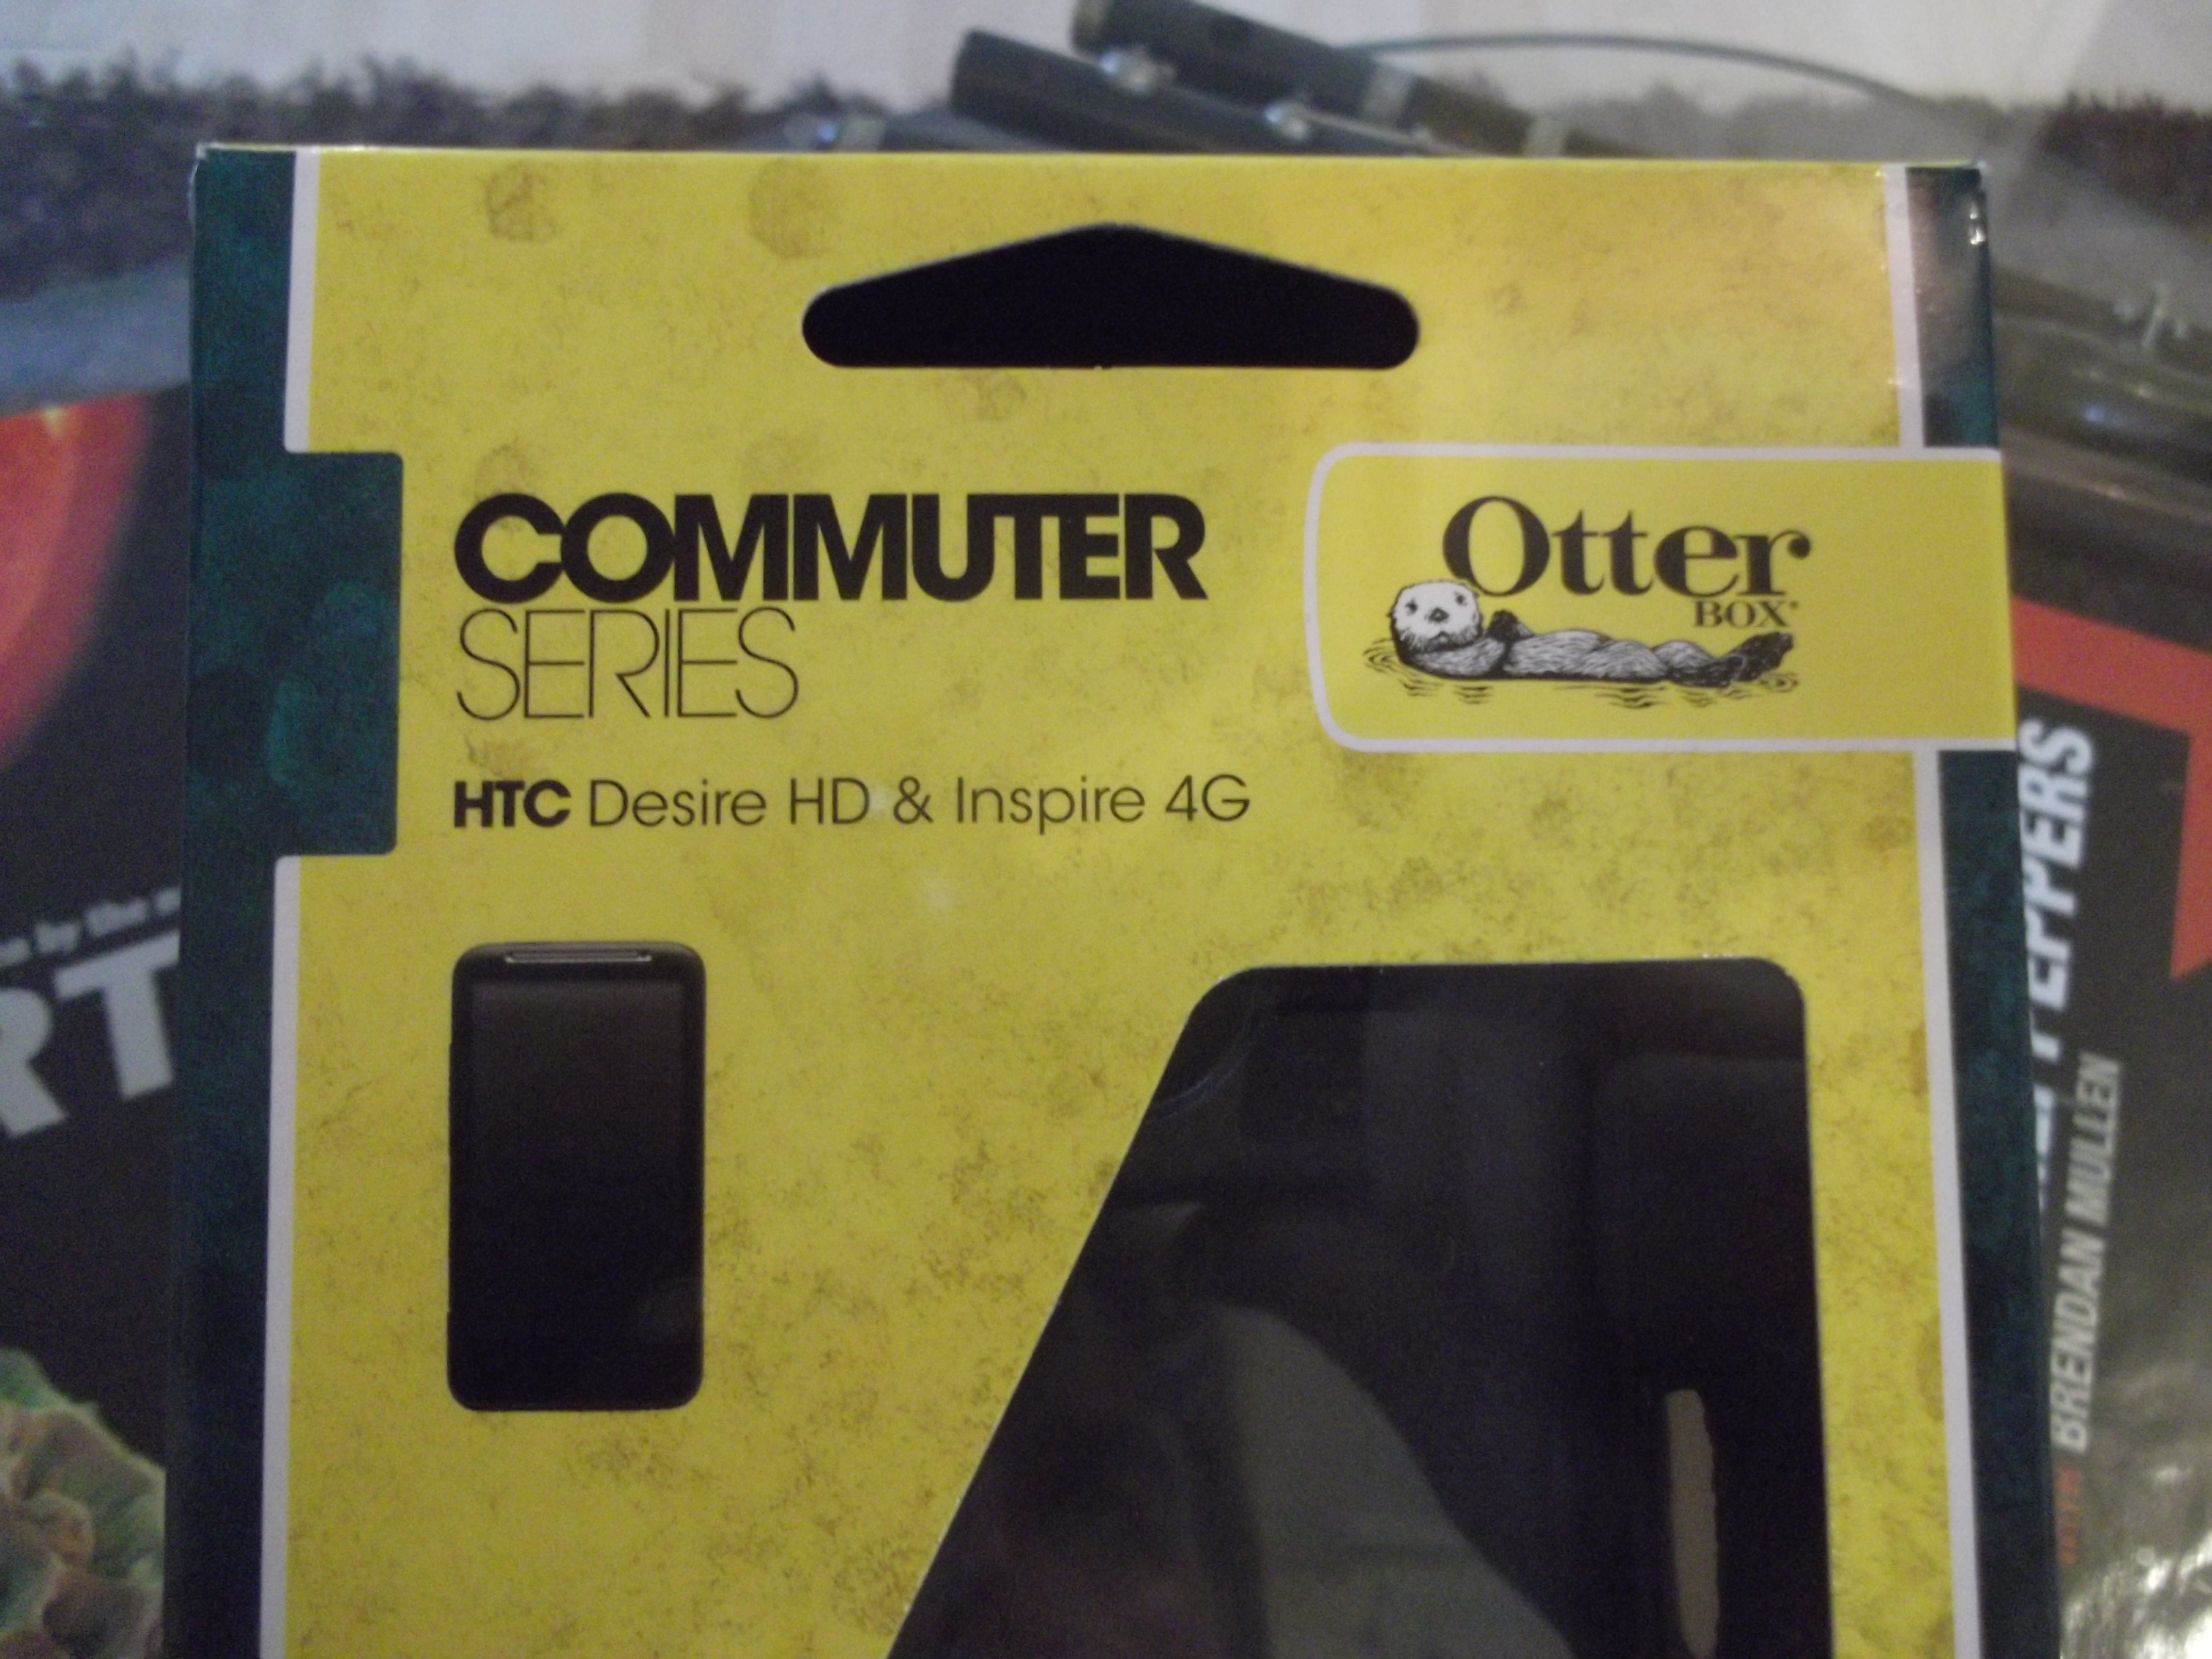 buy online a6186 6786c Unboxing and Review] Otterbox Commuter Series For Desire HD/Inspire ...